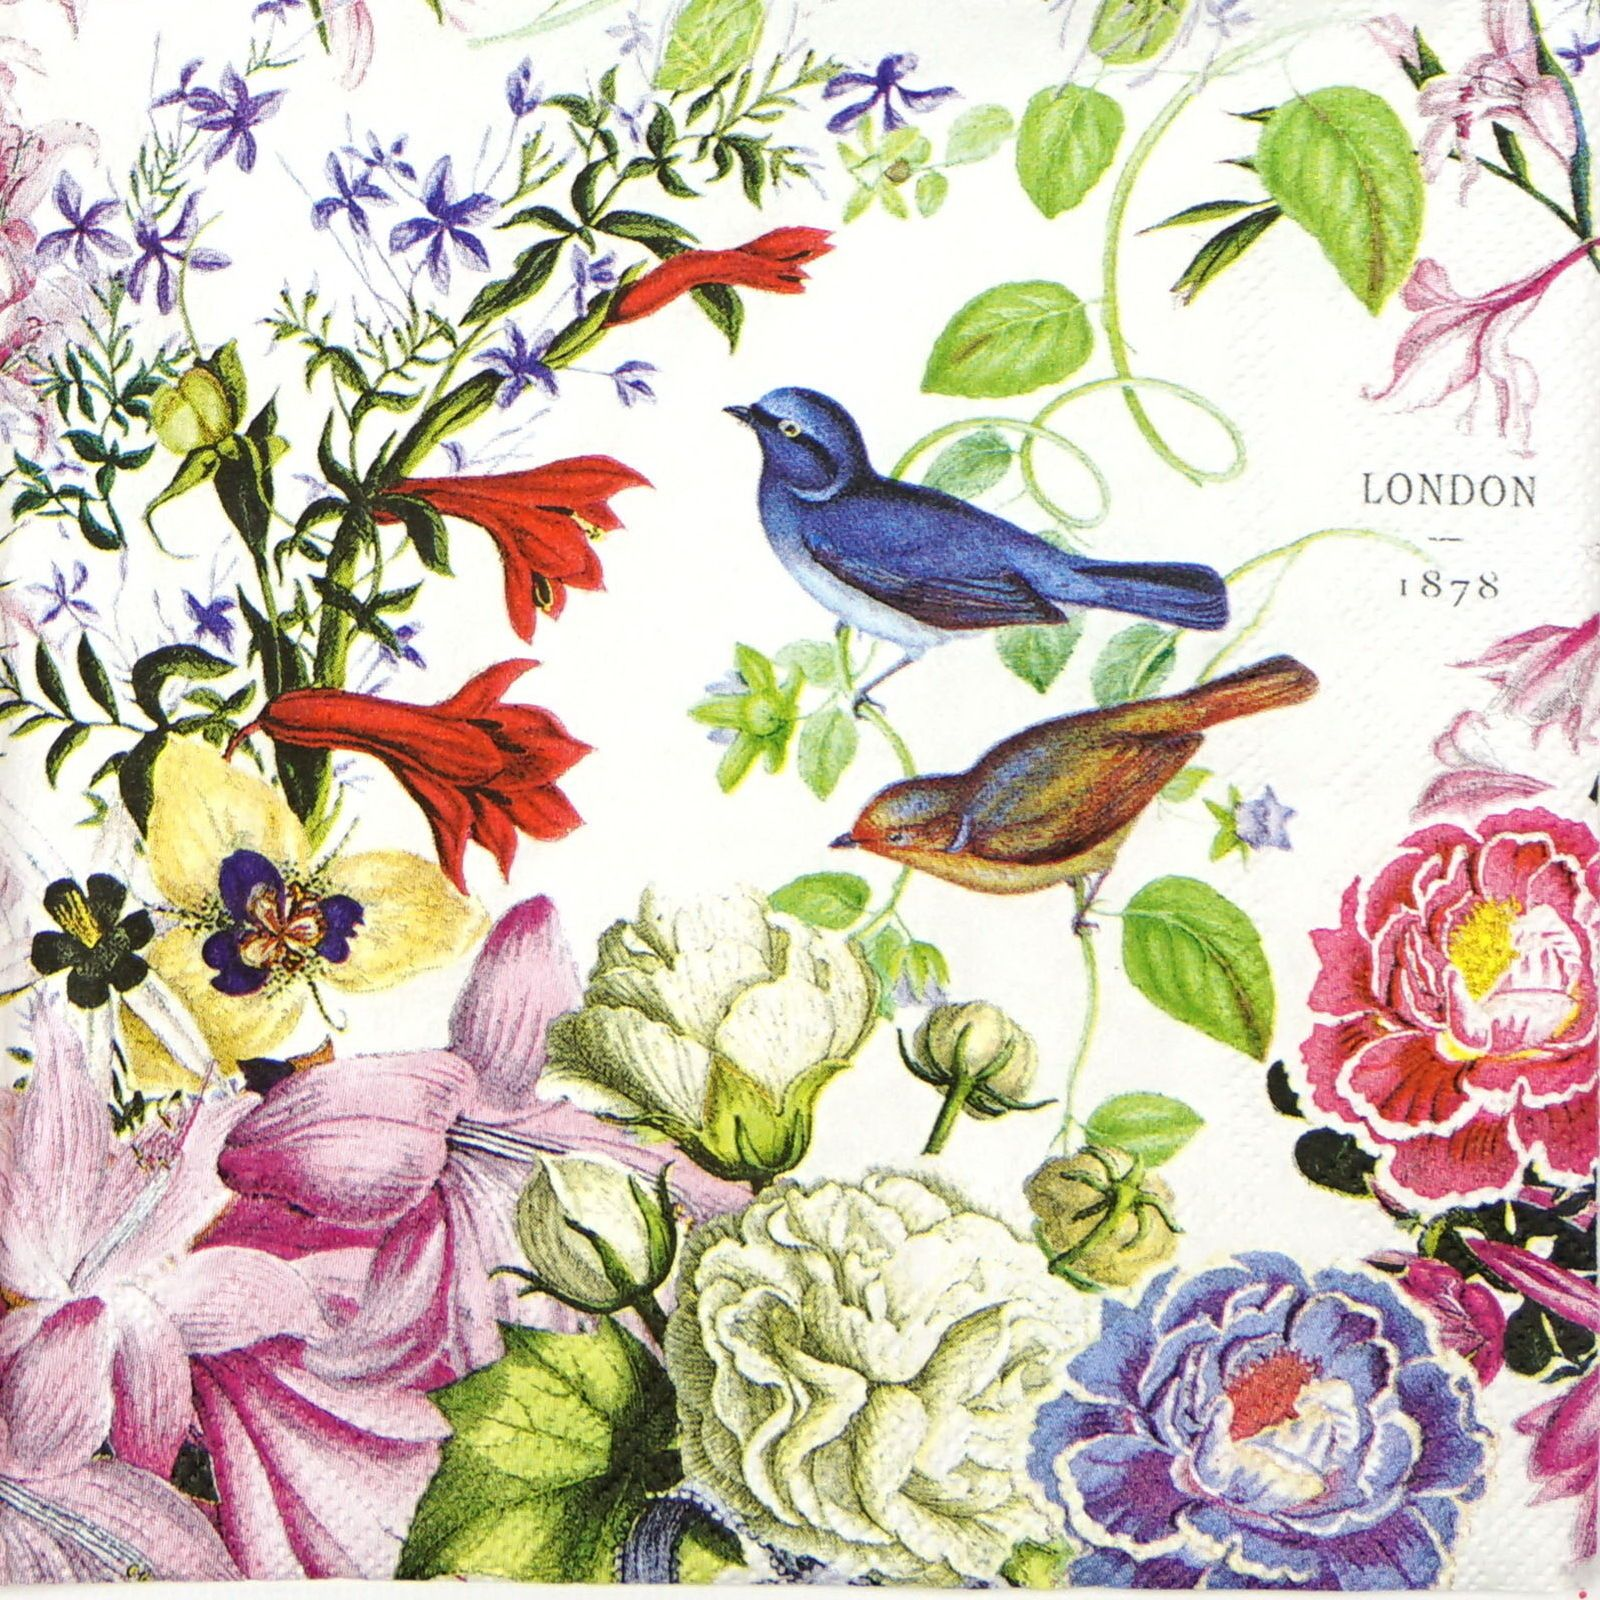 4x Paper Napkins for Decoupage Decopatch Craft Like in Paradise